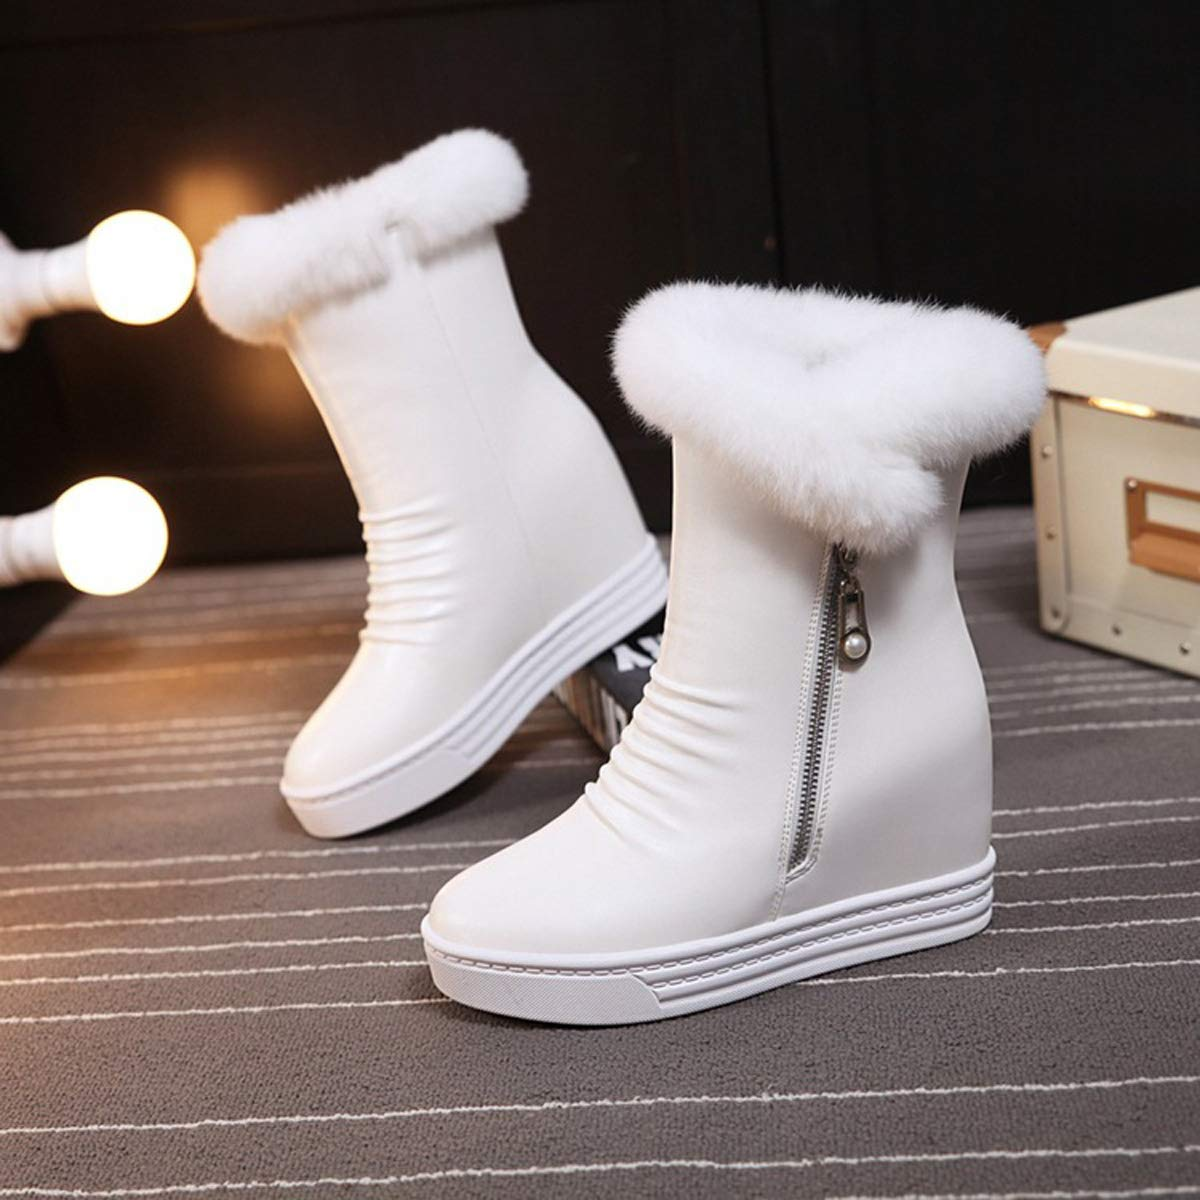 DANDANJIE Womens Boots Winter Wedges Heel Ankle Boots Ladies High-Top Zipper Warm Snow Boot High-Top Shoes for Fall Winter